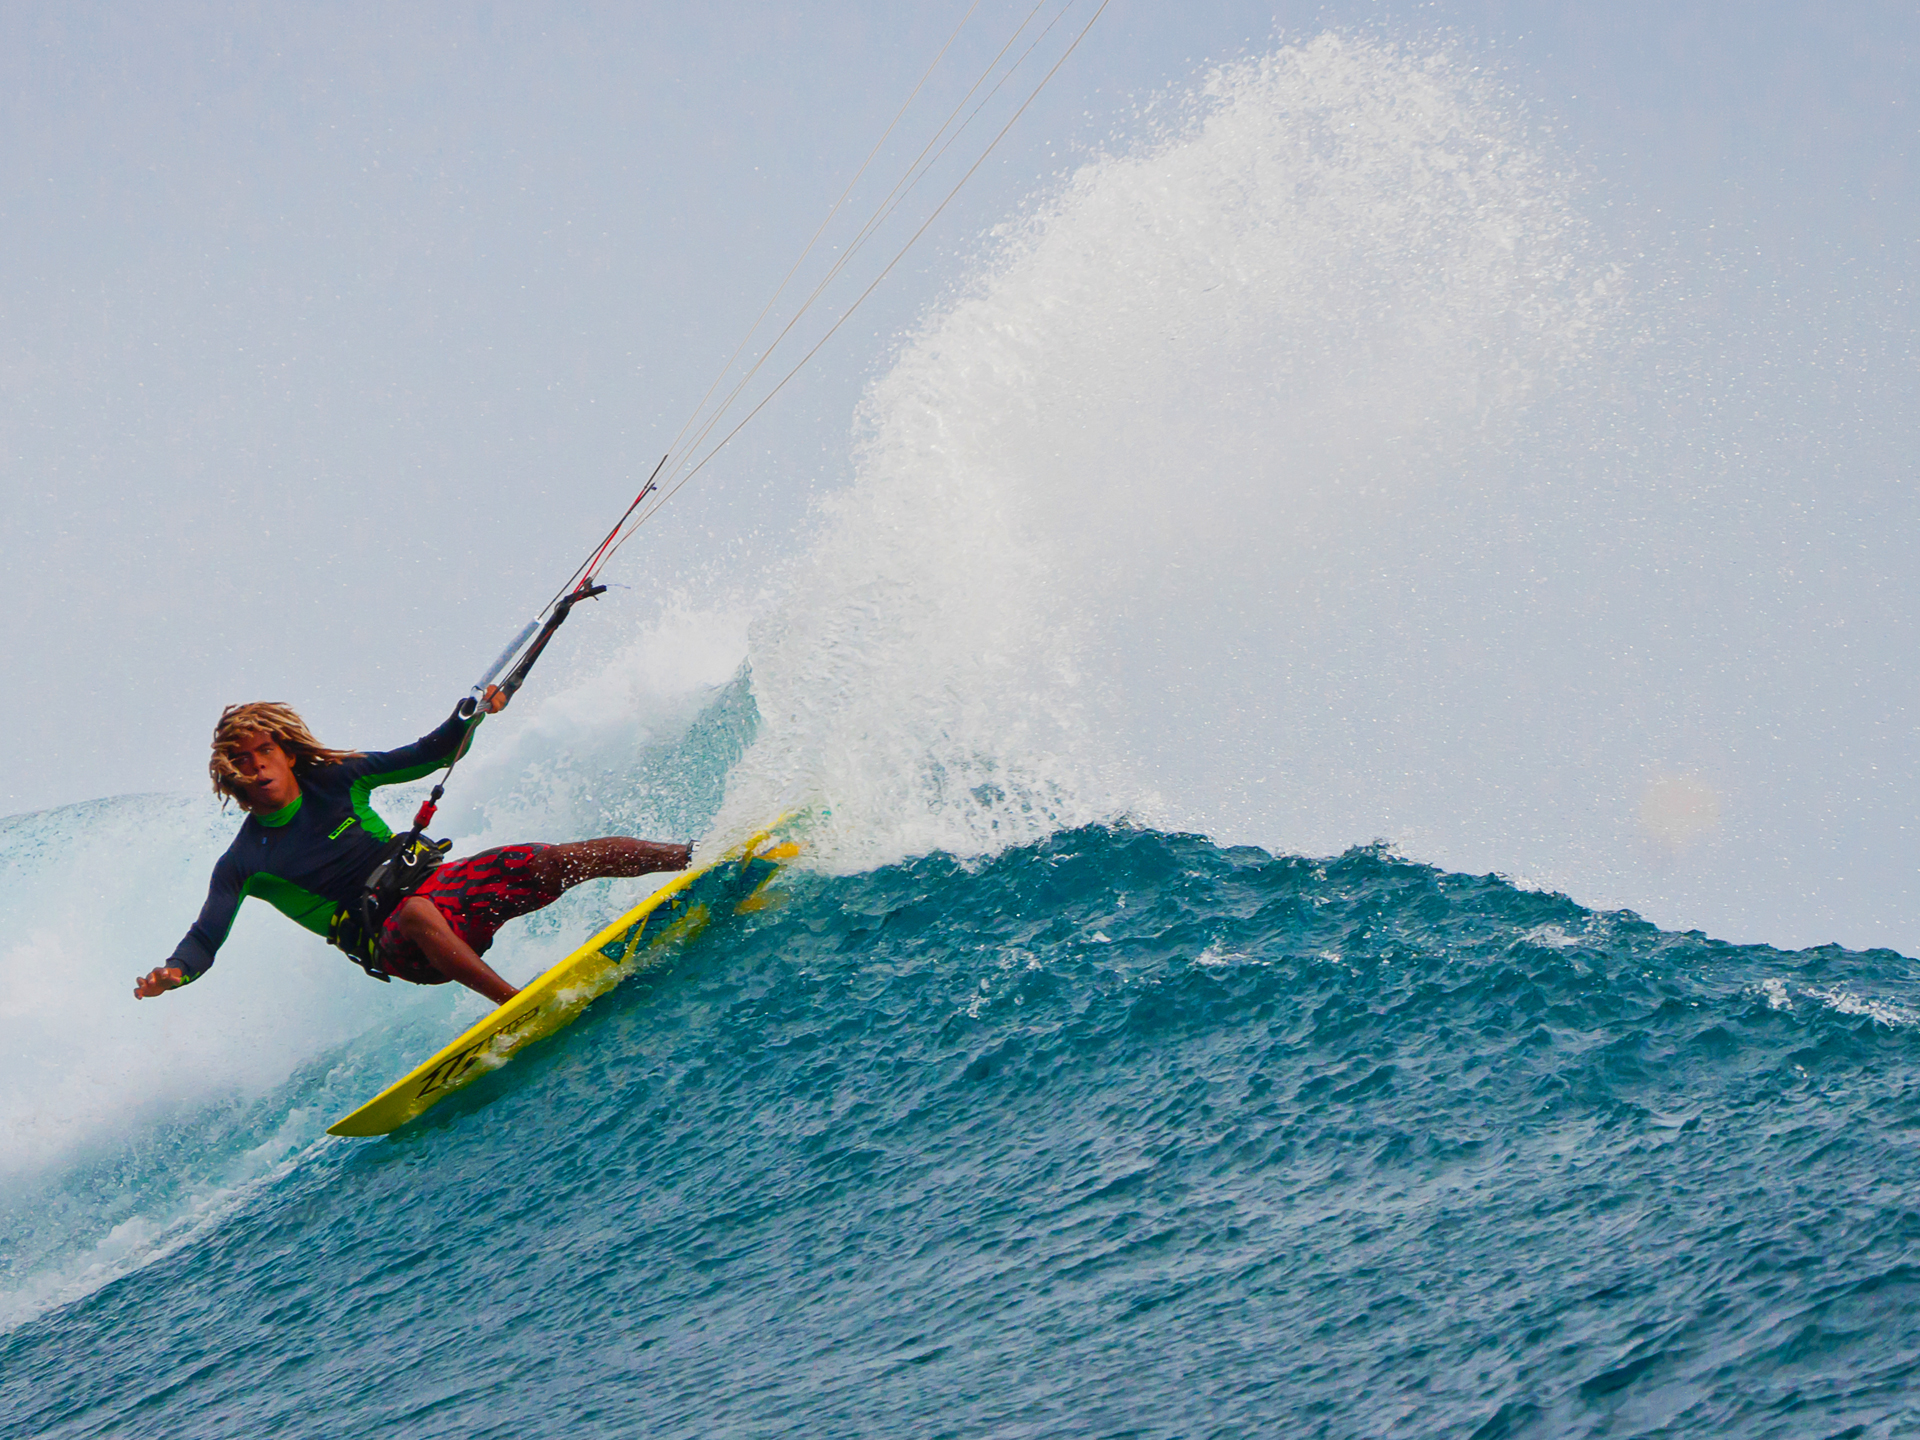 kitesurf wallpaper image - Airton Cozzolino ripping on a wave - North Kiteboarding - in resolution: Standard 4:3 1920 X 1440